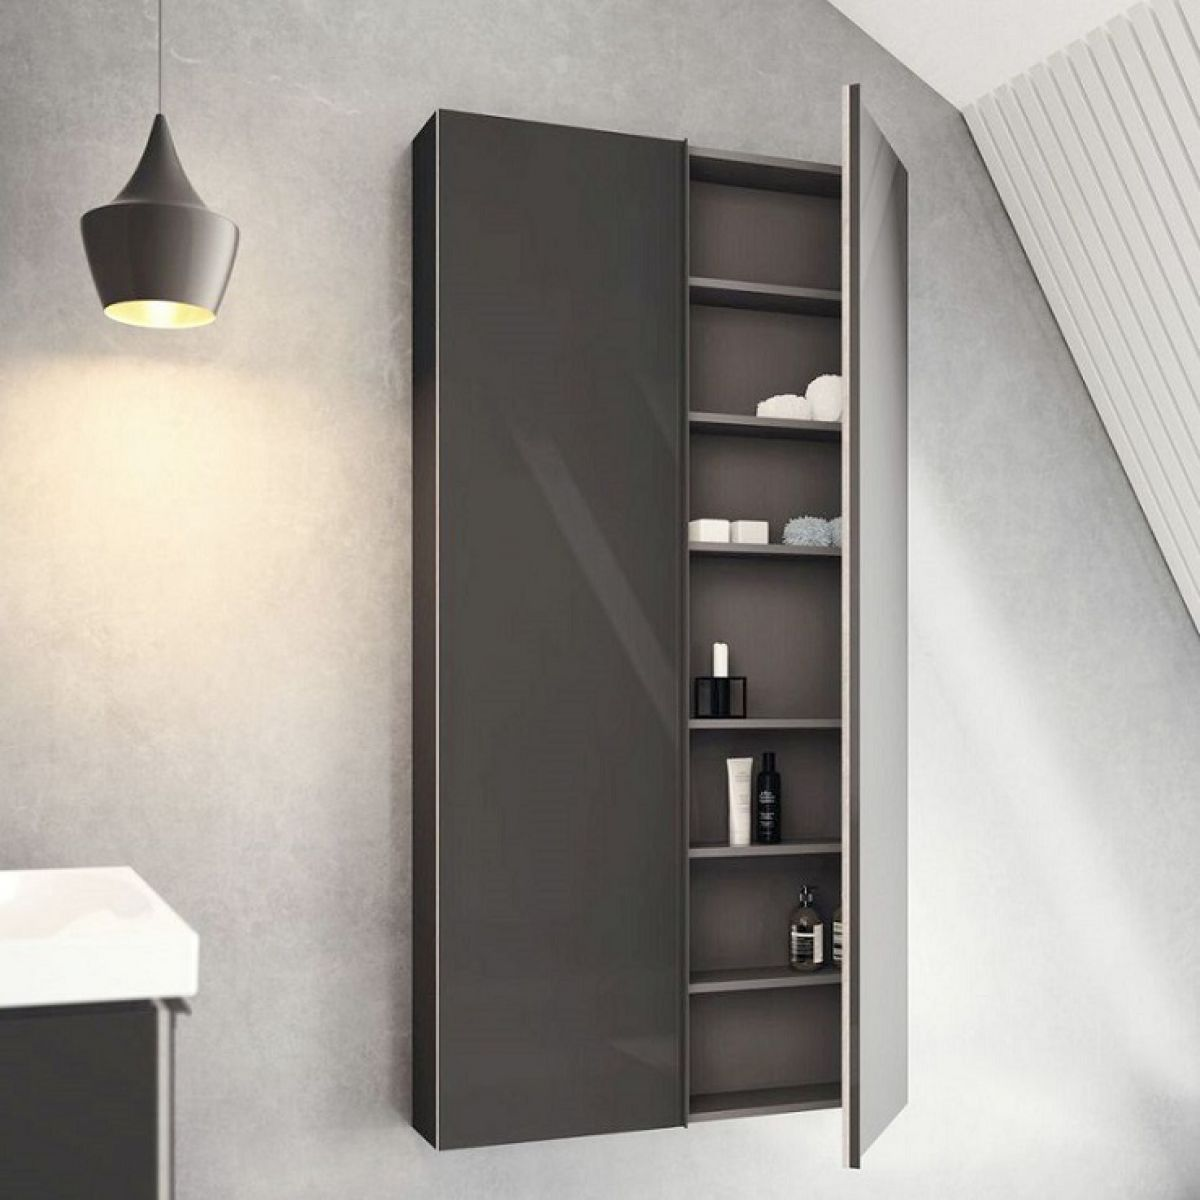 Geberit Acanto 173cm Tall Cabinet With Two Doors